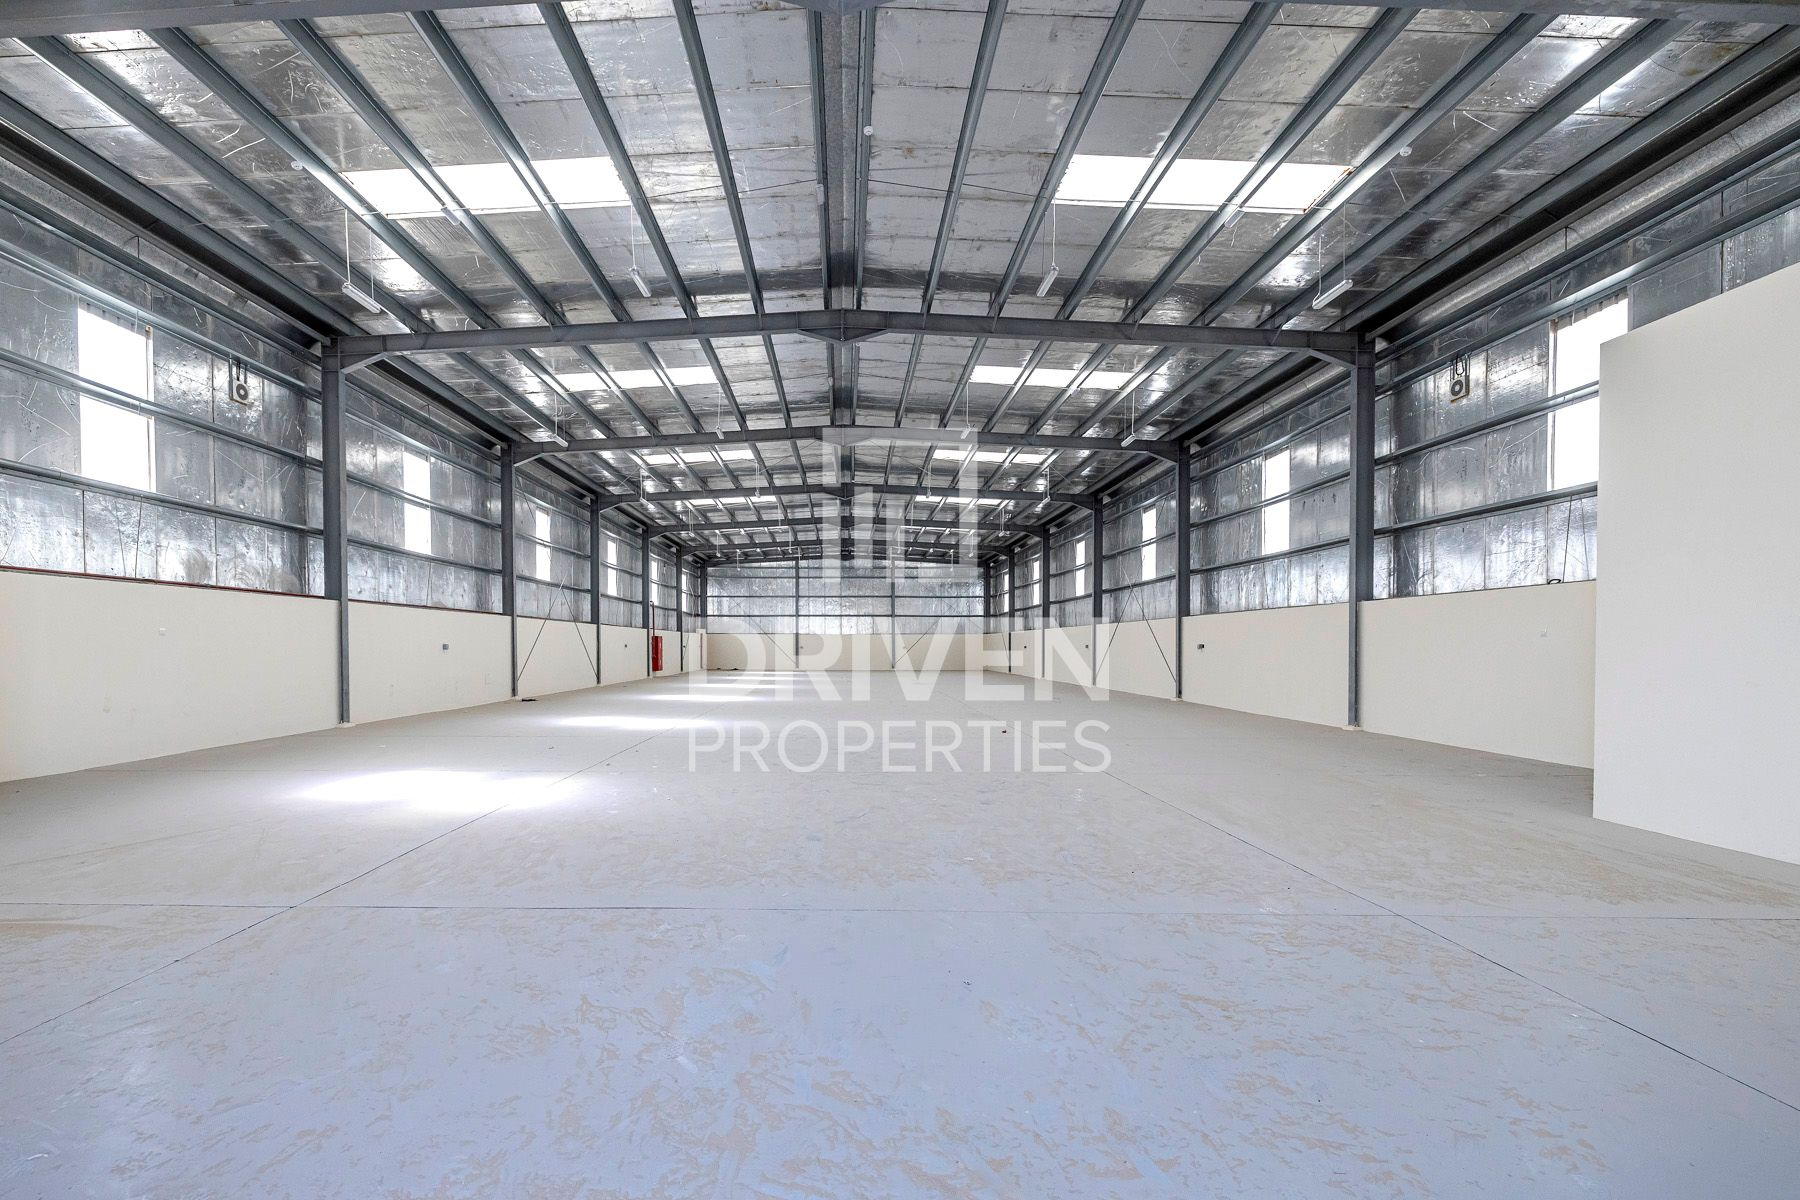 Rented Warehouse for Sell w/ Good Income